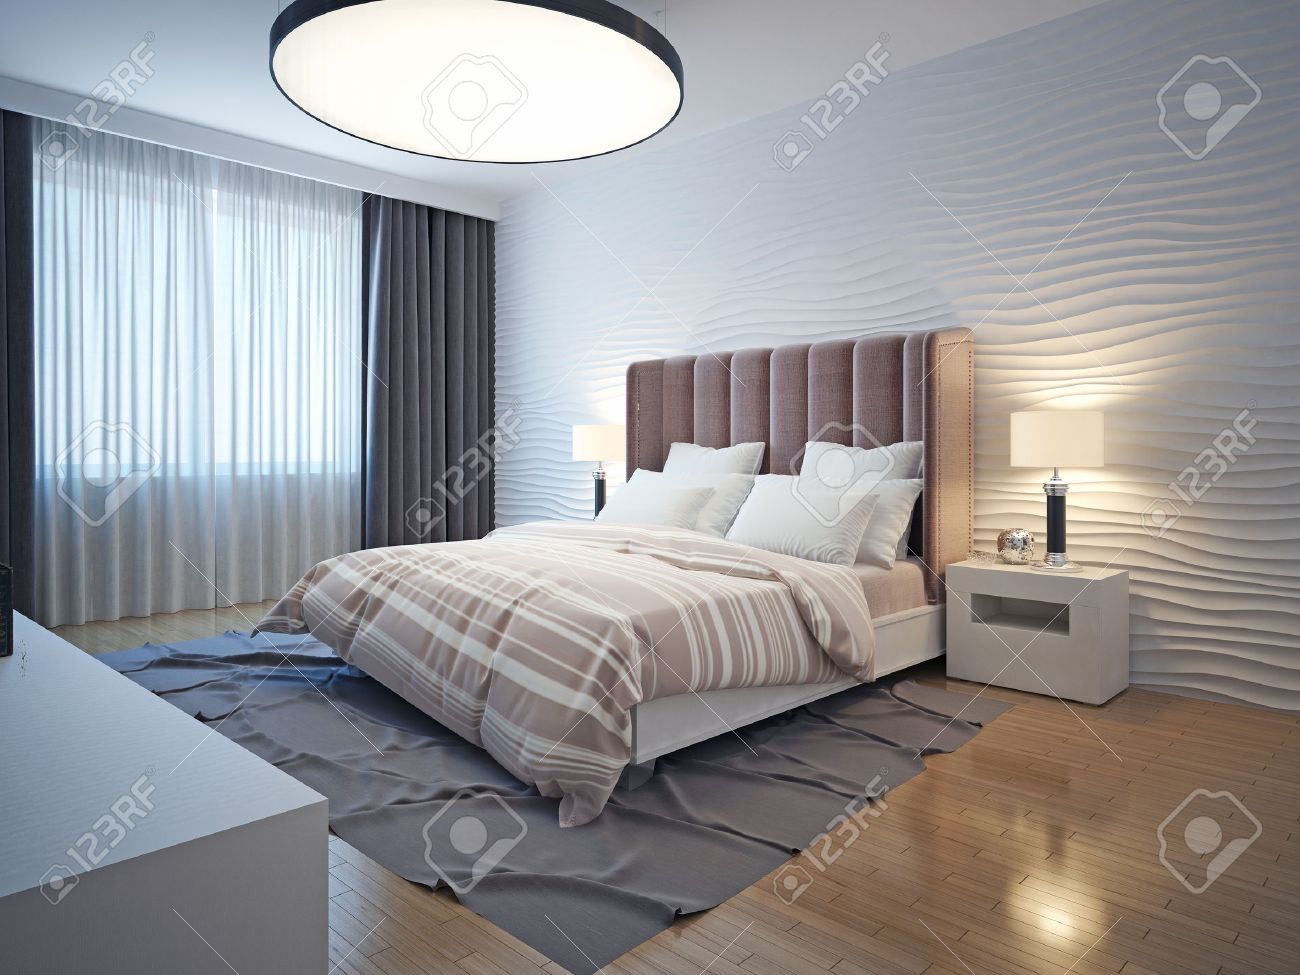 Be bedside table and bed - Light Tones Modern Bedroom Interior Bedroom With Brown Wood Flooring Bedside Table And A